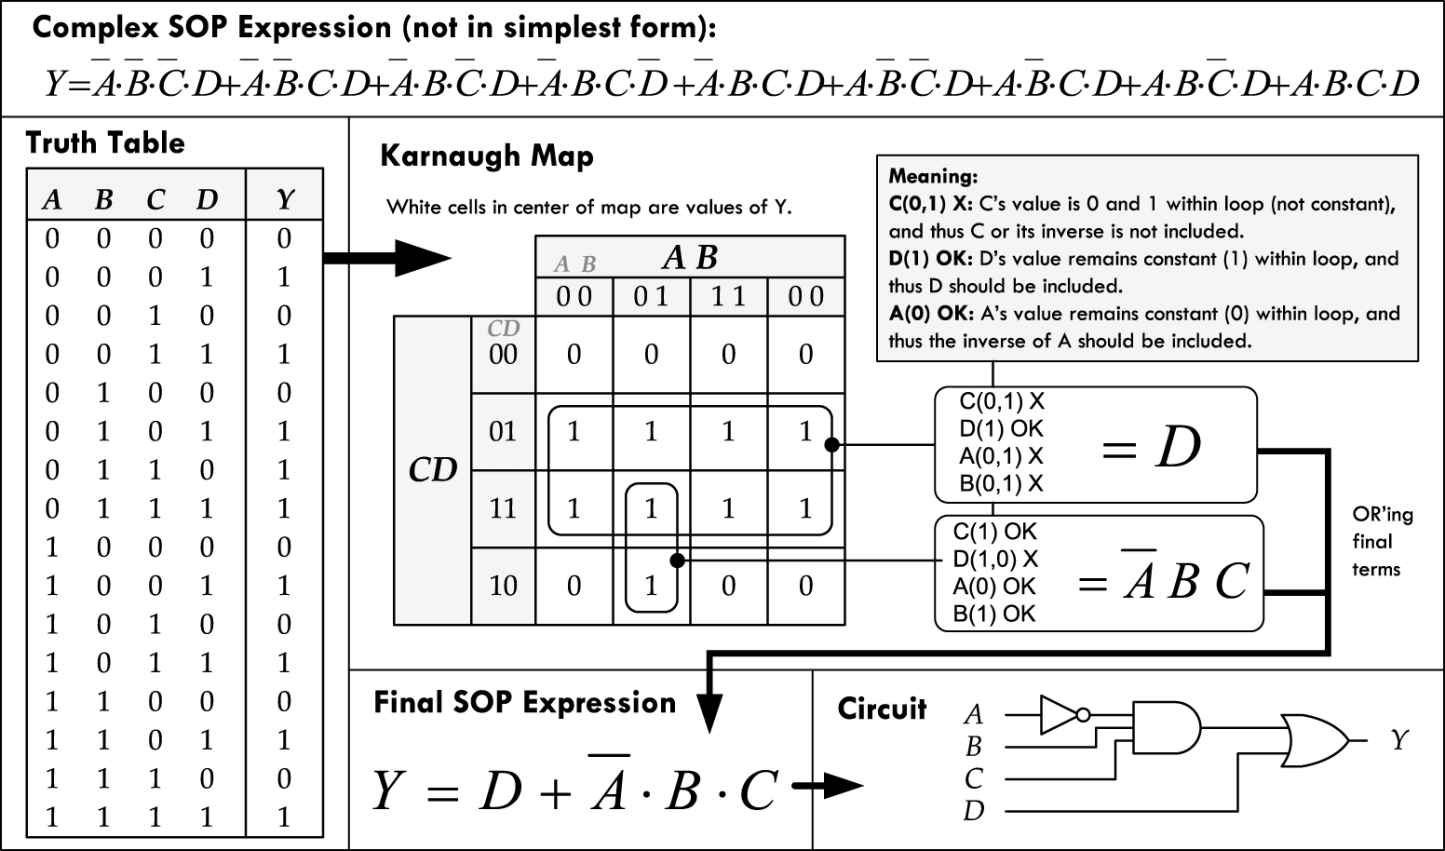 Logic Circuit Example Digital Electronics Practical For Inventors Fourth Fourvariable Sop Expression Can Be Mapped And Converted Into A Simplified That Used To Create The Final